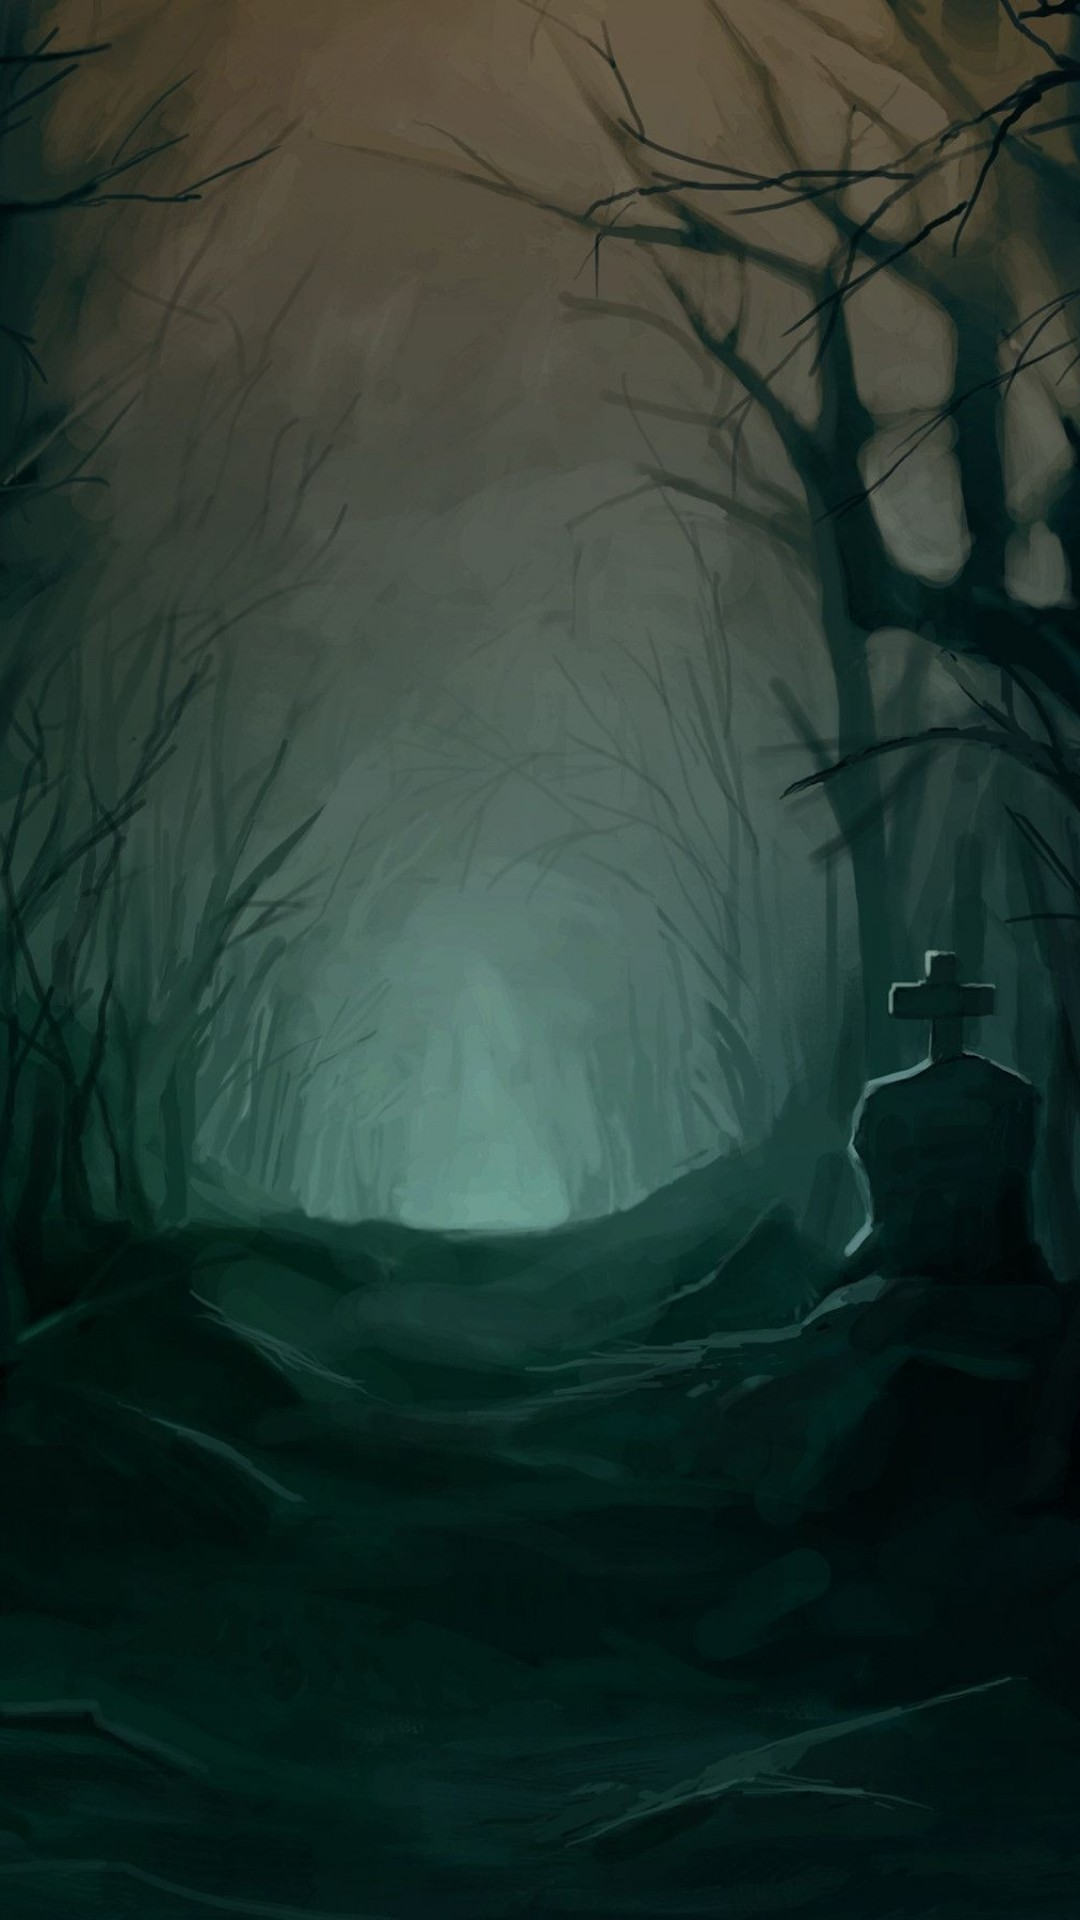 Dark Forest, Creepy, Grave, Path, Scary, Trees